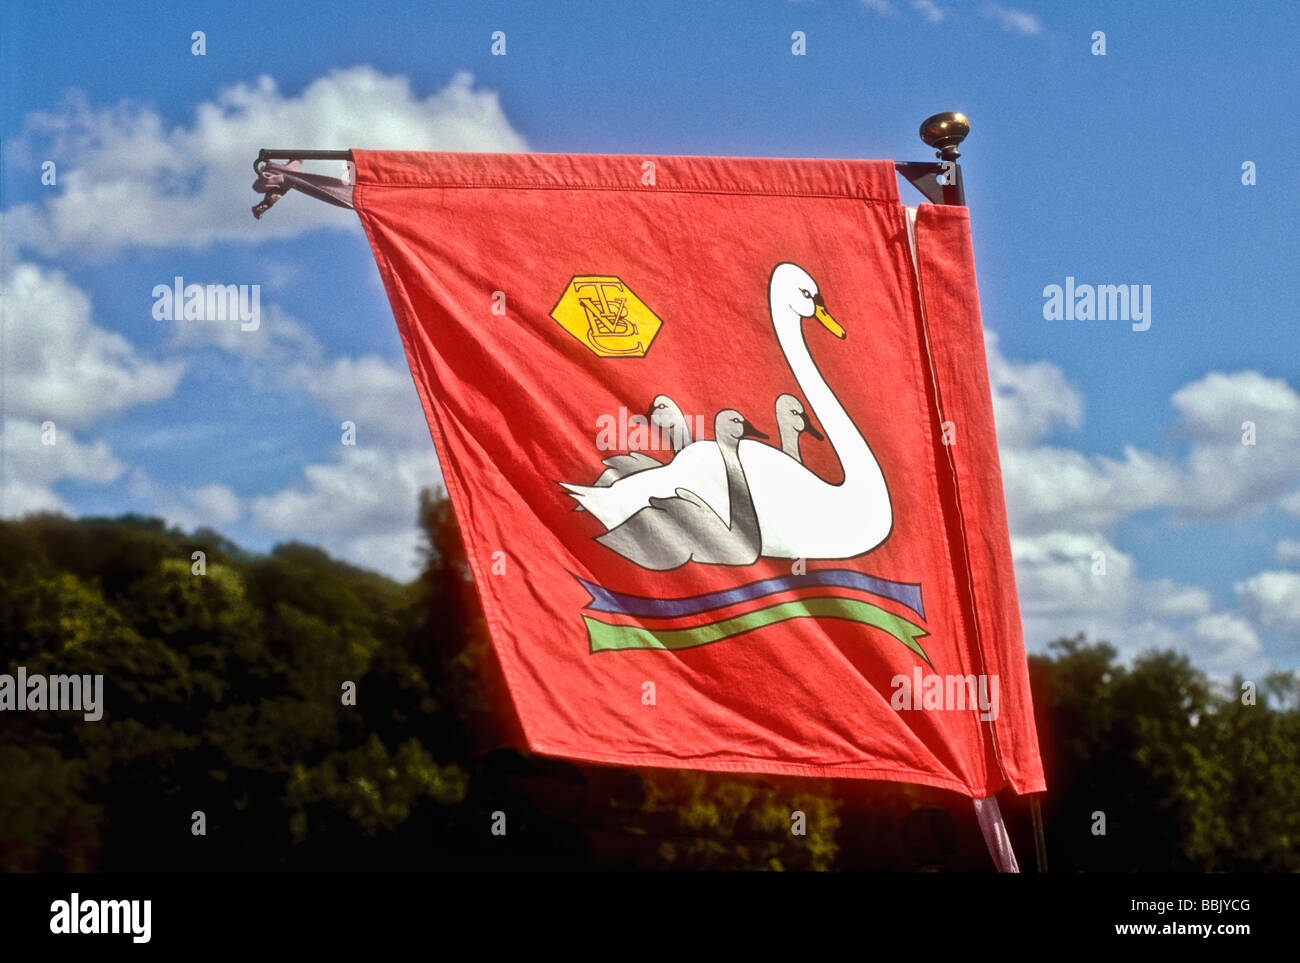 The Thames Vintage Boat Club swan upping flag flies on a launch on the River Thames at Henley England UK - Stock Image